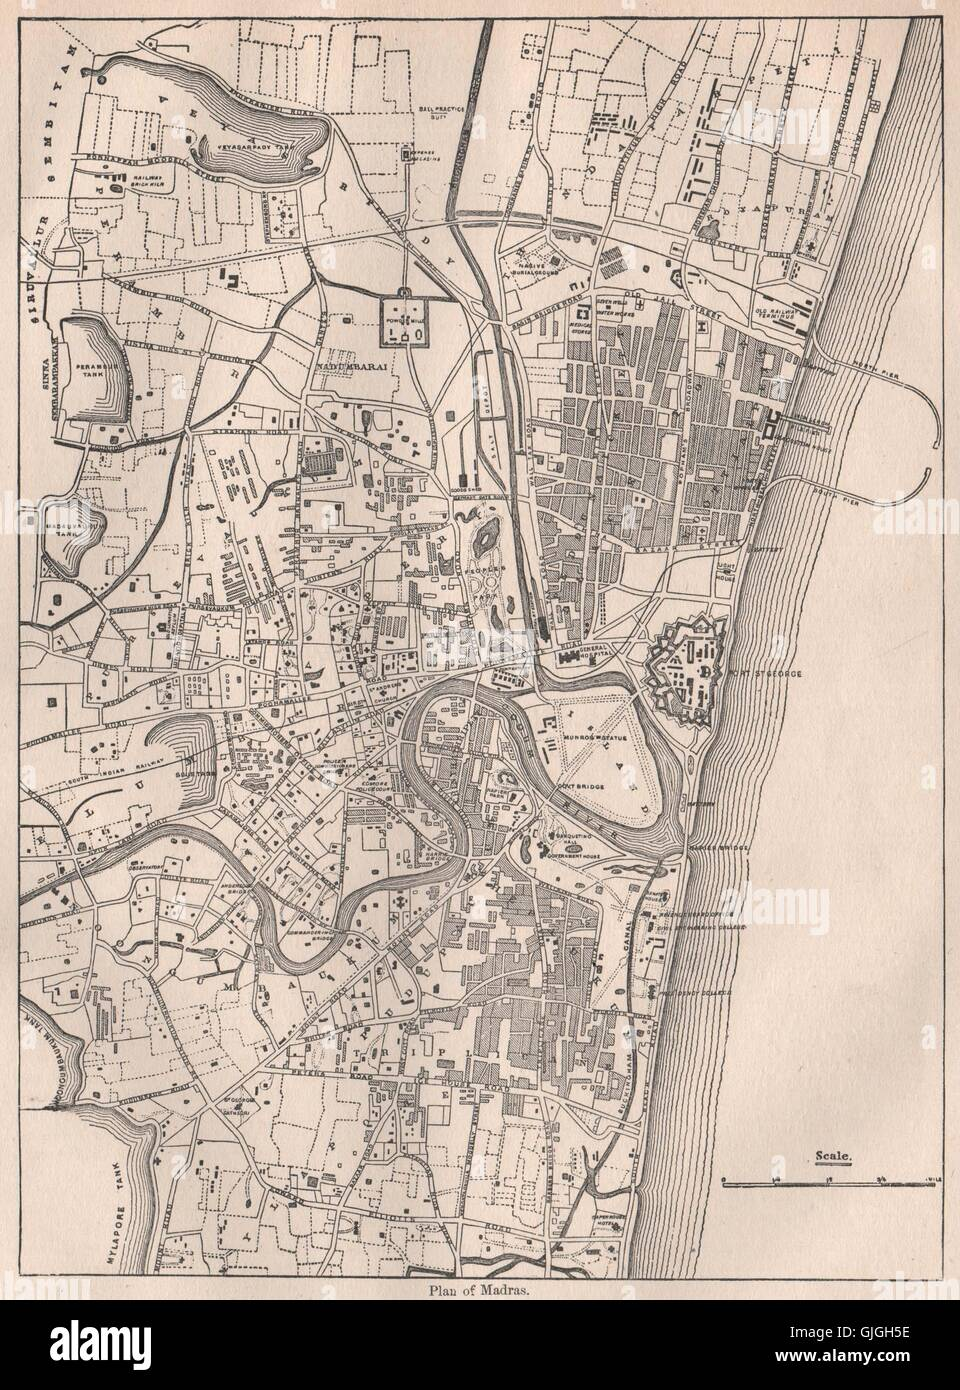 Town/city plan of Madras/Chennai. India. BRITANNICA, 1898 ... on map of cape town south africa, map of guangzhou china, map of stockholm sweden, map of taipei taiwan, map of port elizabeth south africa, weather madras india, map of zurich switzerland, madras chennai india, map of adana turkey, photographs of madras india, map of mombasa kenya, map of xiamen china, map of malindi kenya, map of copenhagen denmark, map of bora bora tahiti, map of krakow poland, map of phuket thailand, map of jakarta indonesia, map of kuala lumpur malaysia, maps of only india,